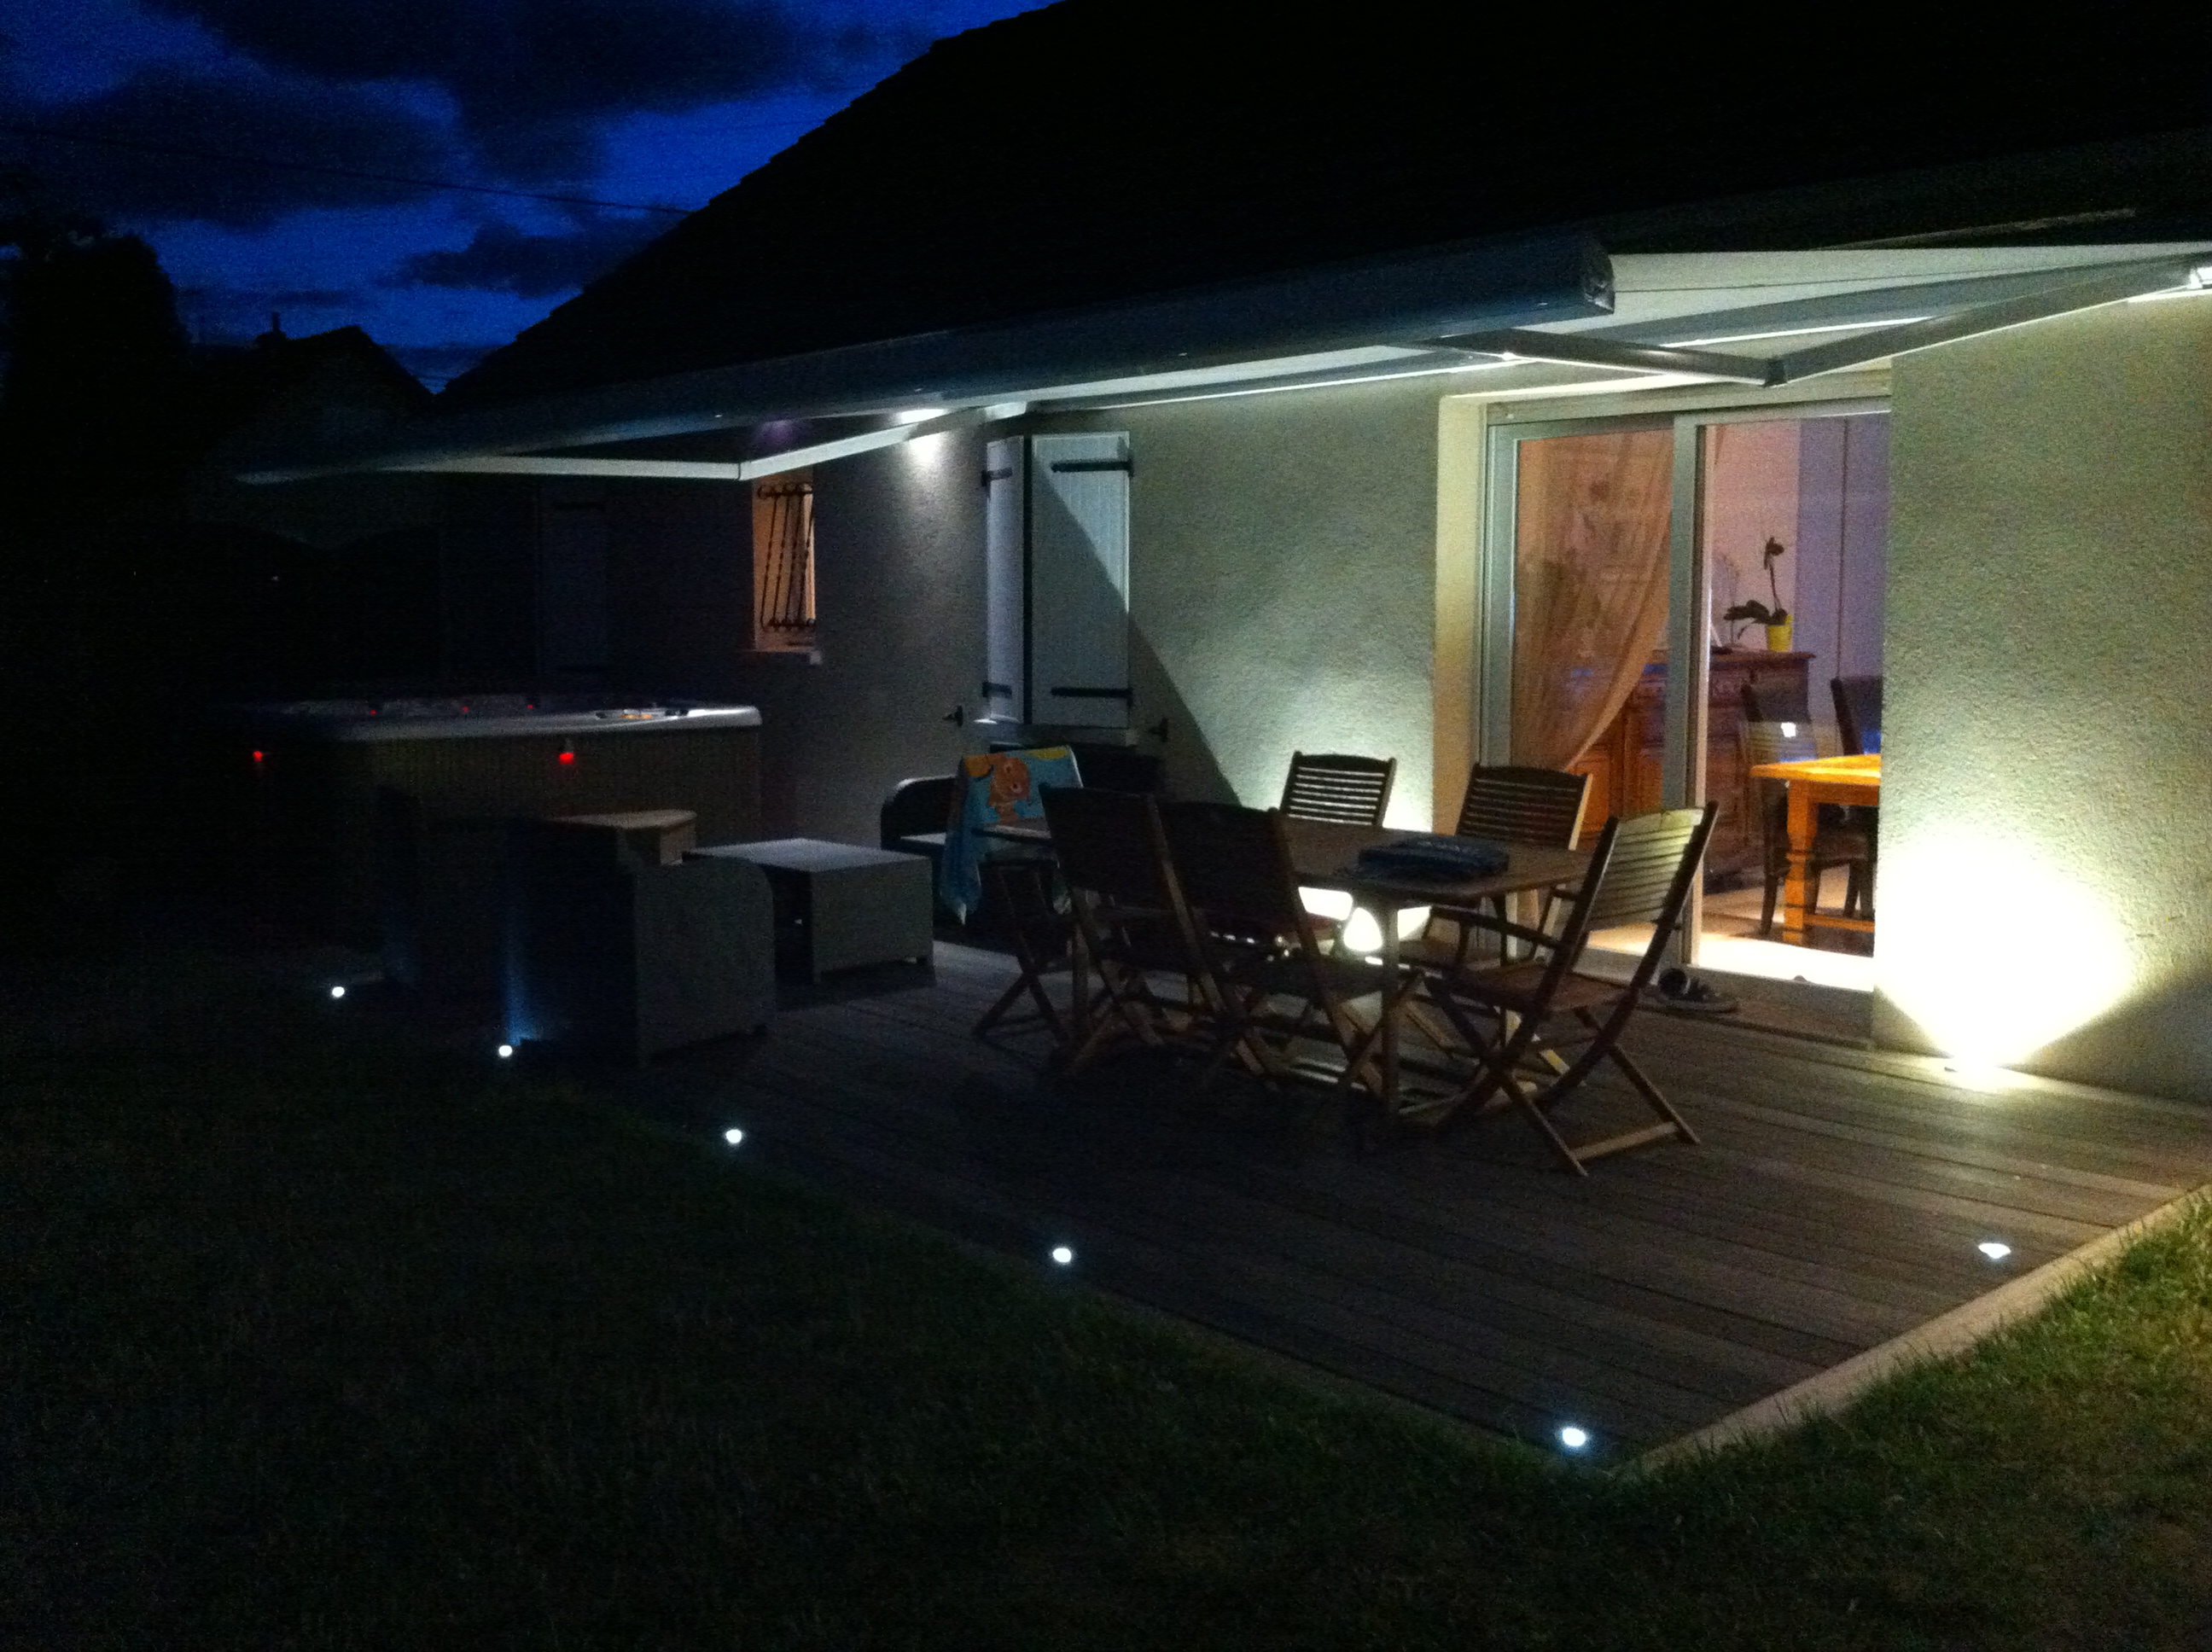 Eclairage terrasse ext rieure avec spots led lc electricit for Lumiere terrasse led